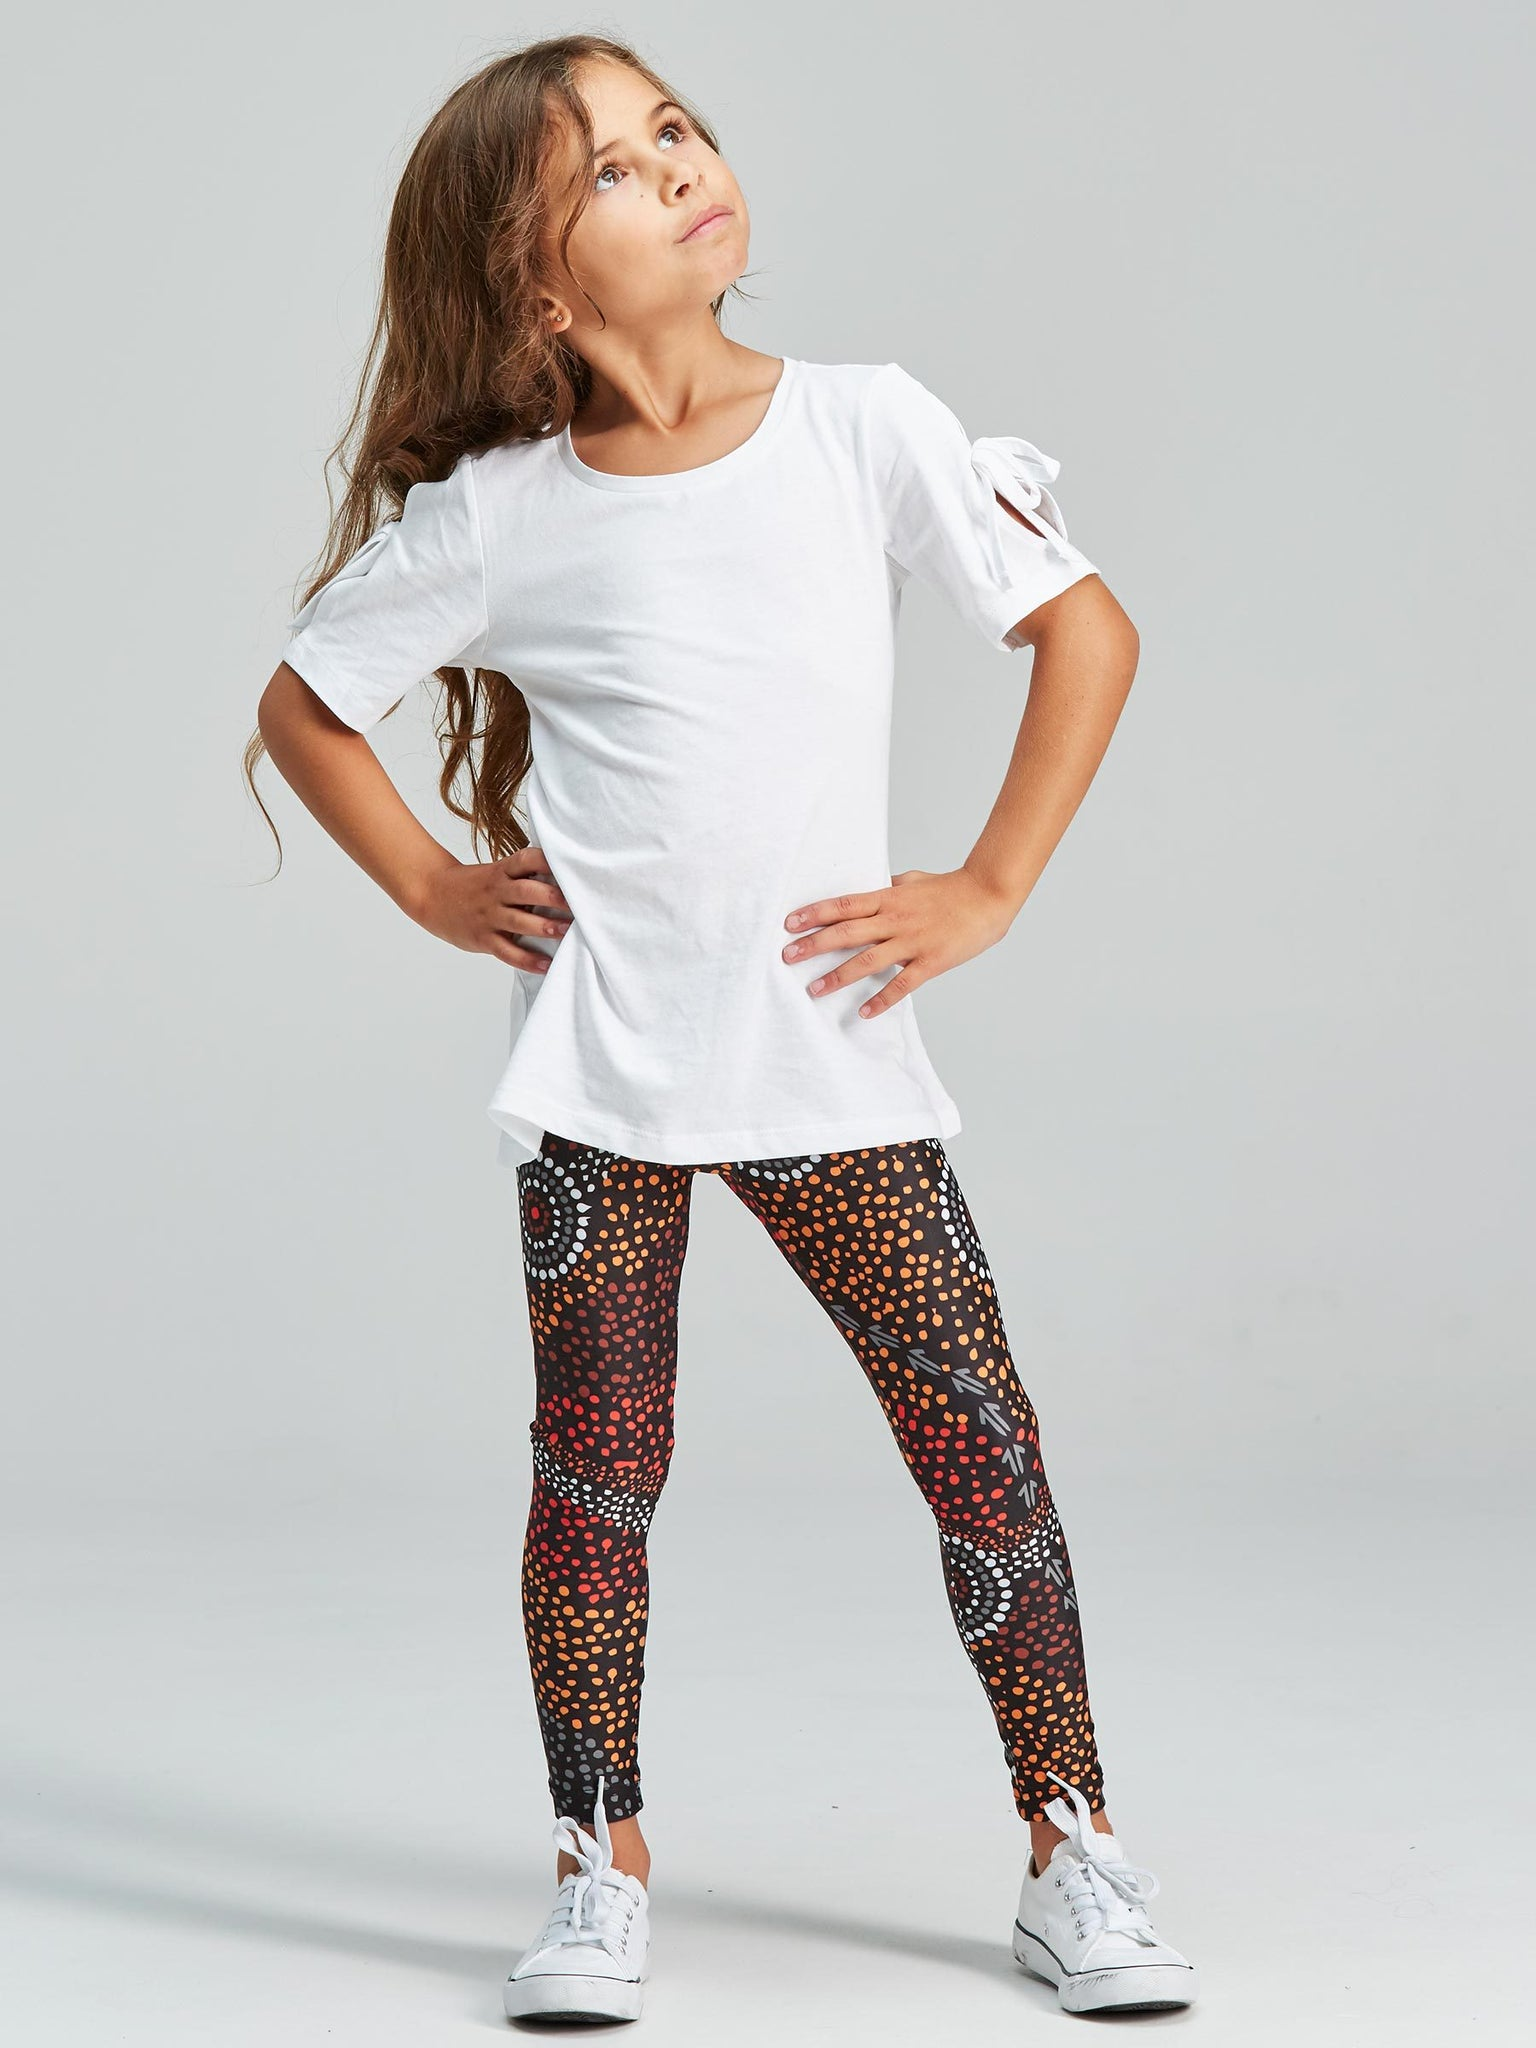 Dreamtime kids' leggings